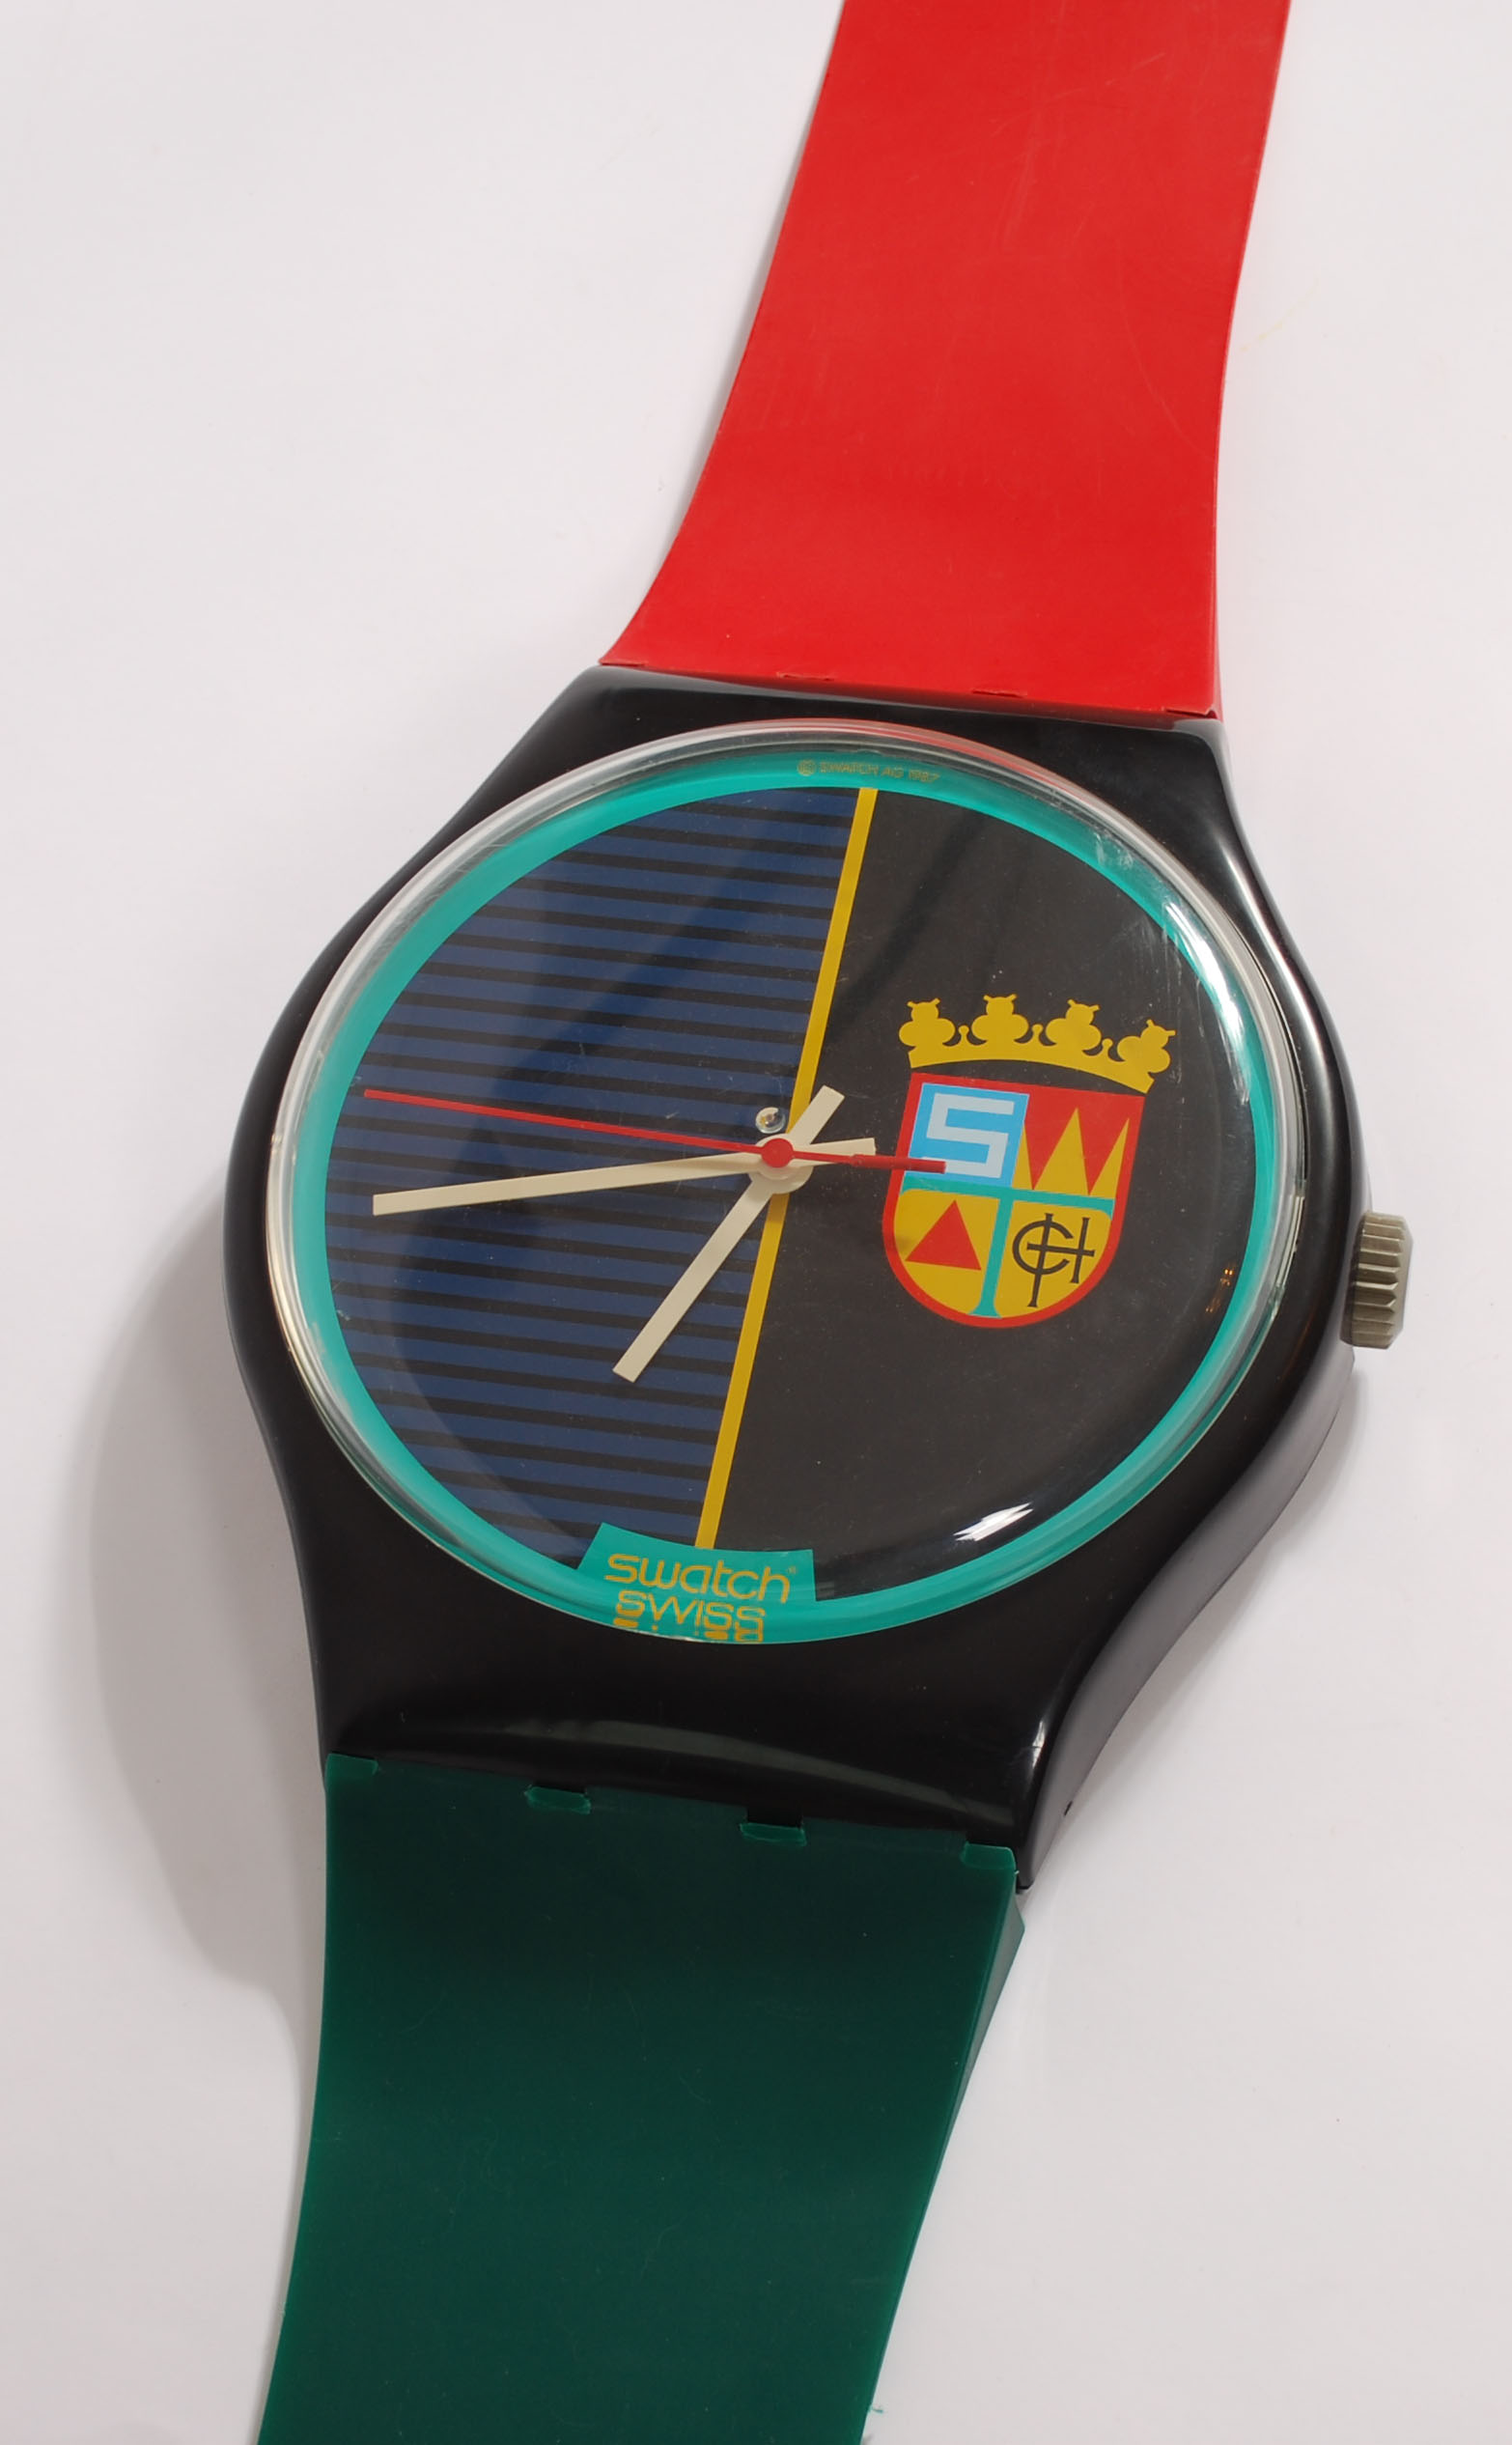 """Maxi Swatch wall clock, 1987 """"Sir Swatch"""" MGB111  - AVAILABLE"""